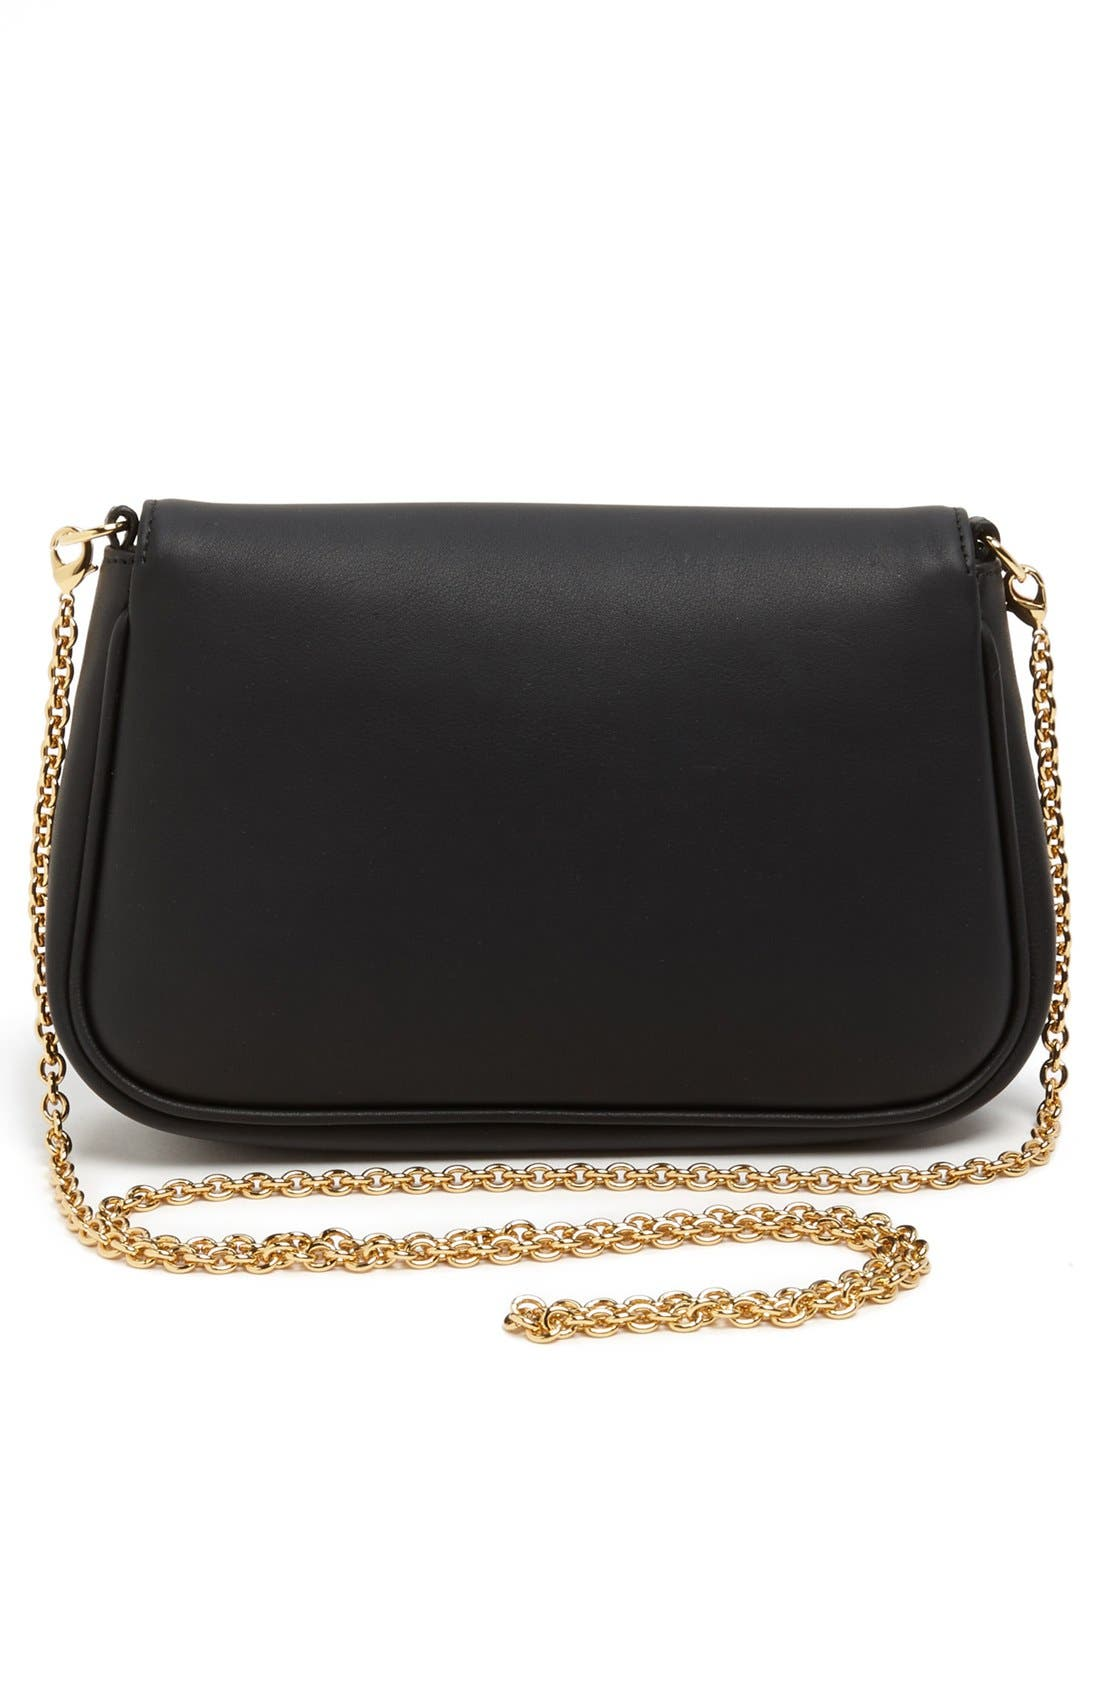 Alternate Image 3  - Fendi 'Fendista' Pouchette Crossbody Bag